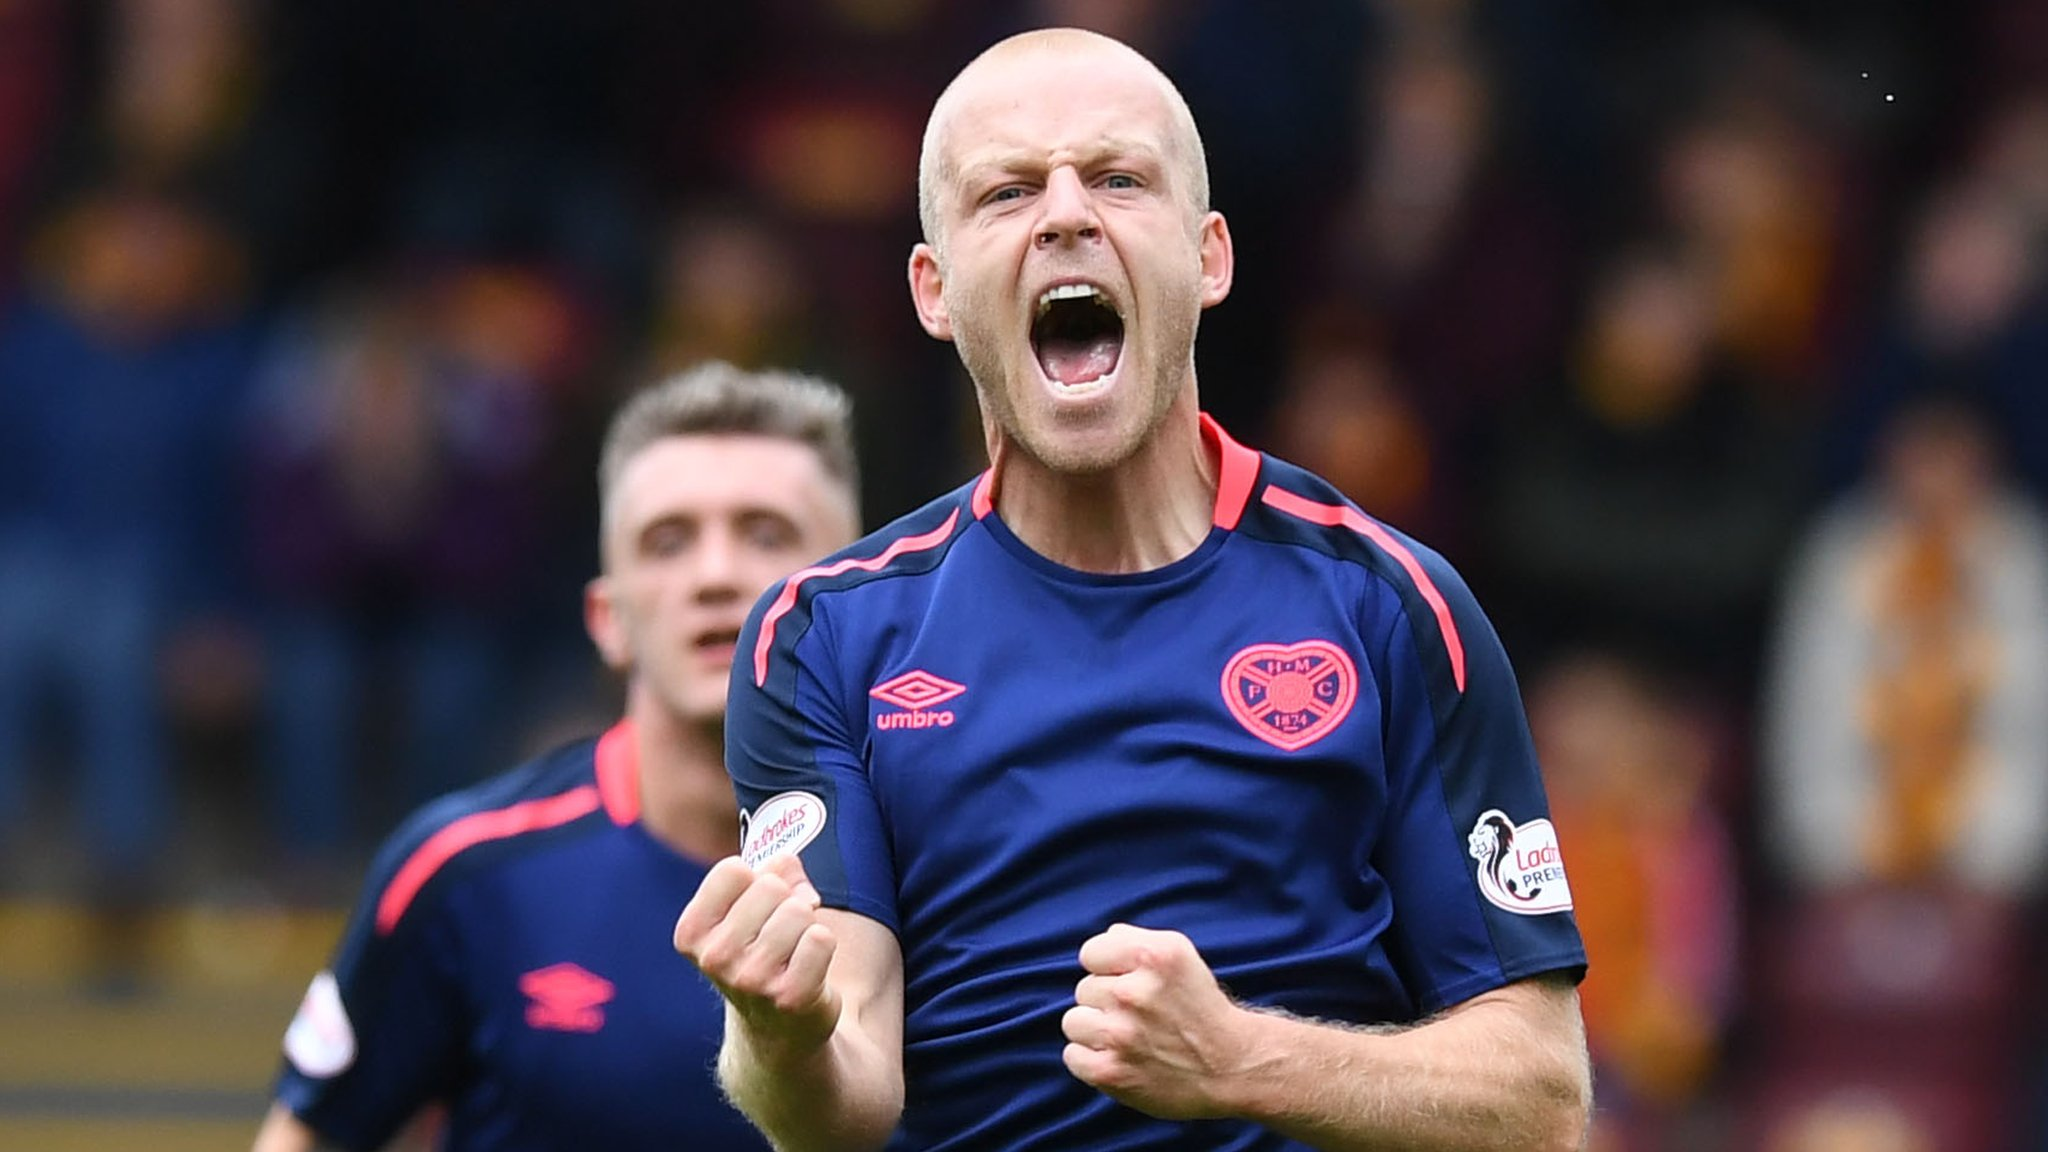 Motherwell 0-1 Hearts: Steven Naismith strike puts leaders five clear